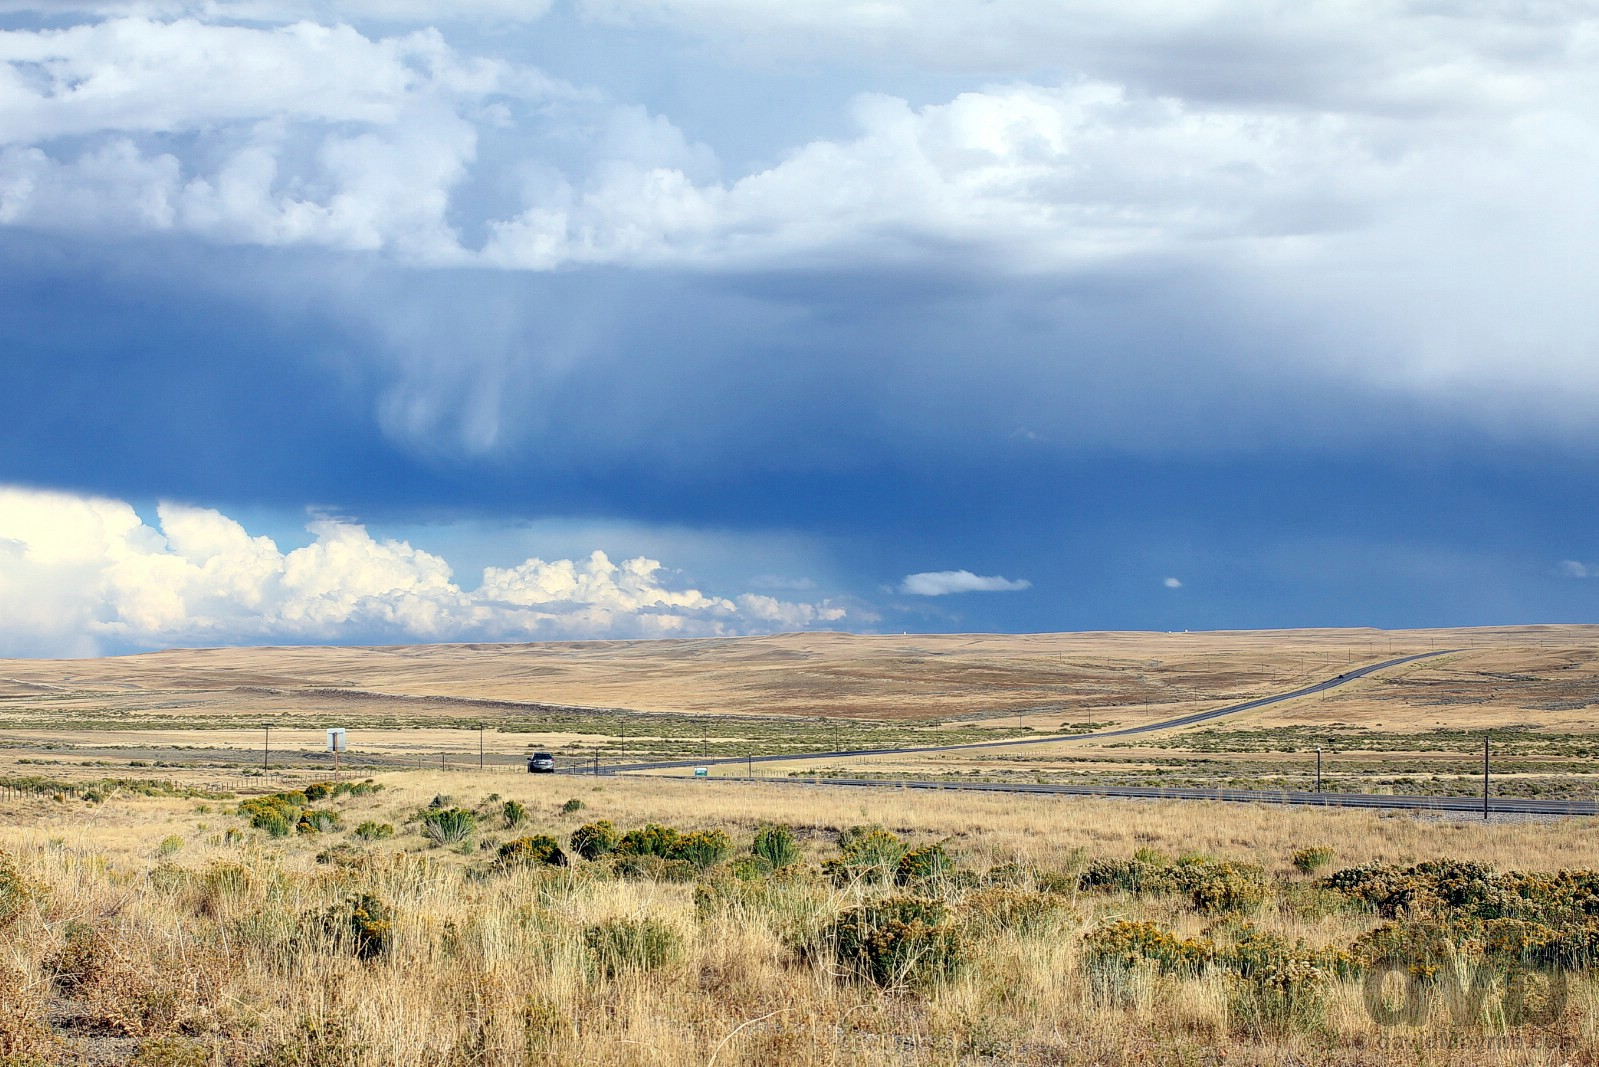 By the side of US Route 30 in Albany County, Wyoming, USA. September 14, 2016.